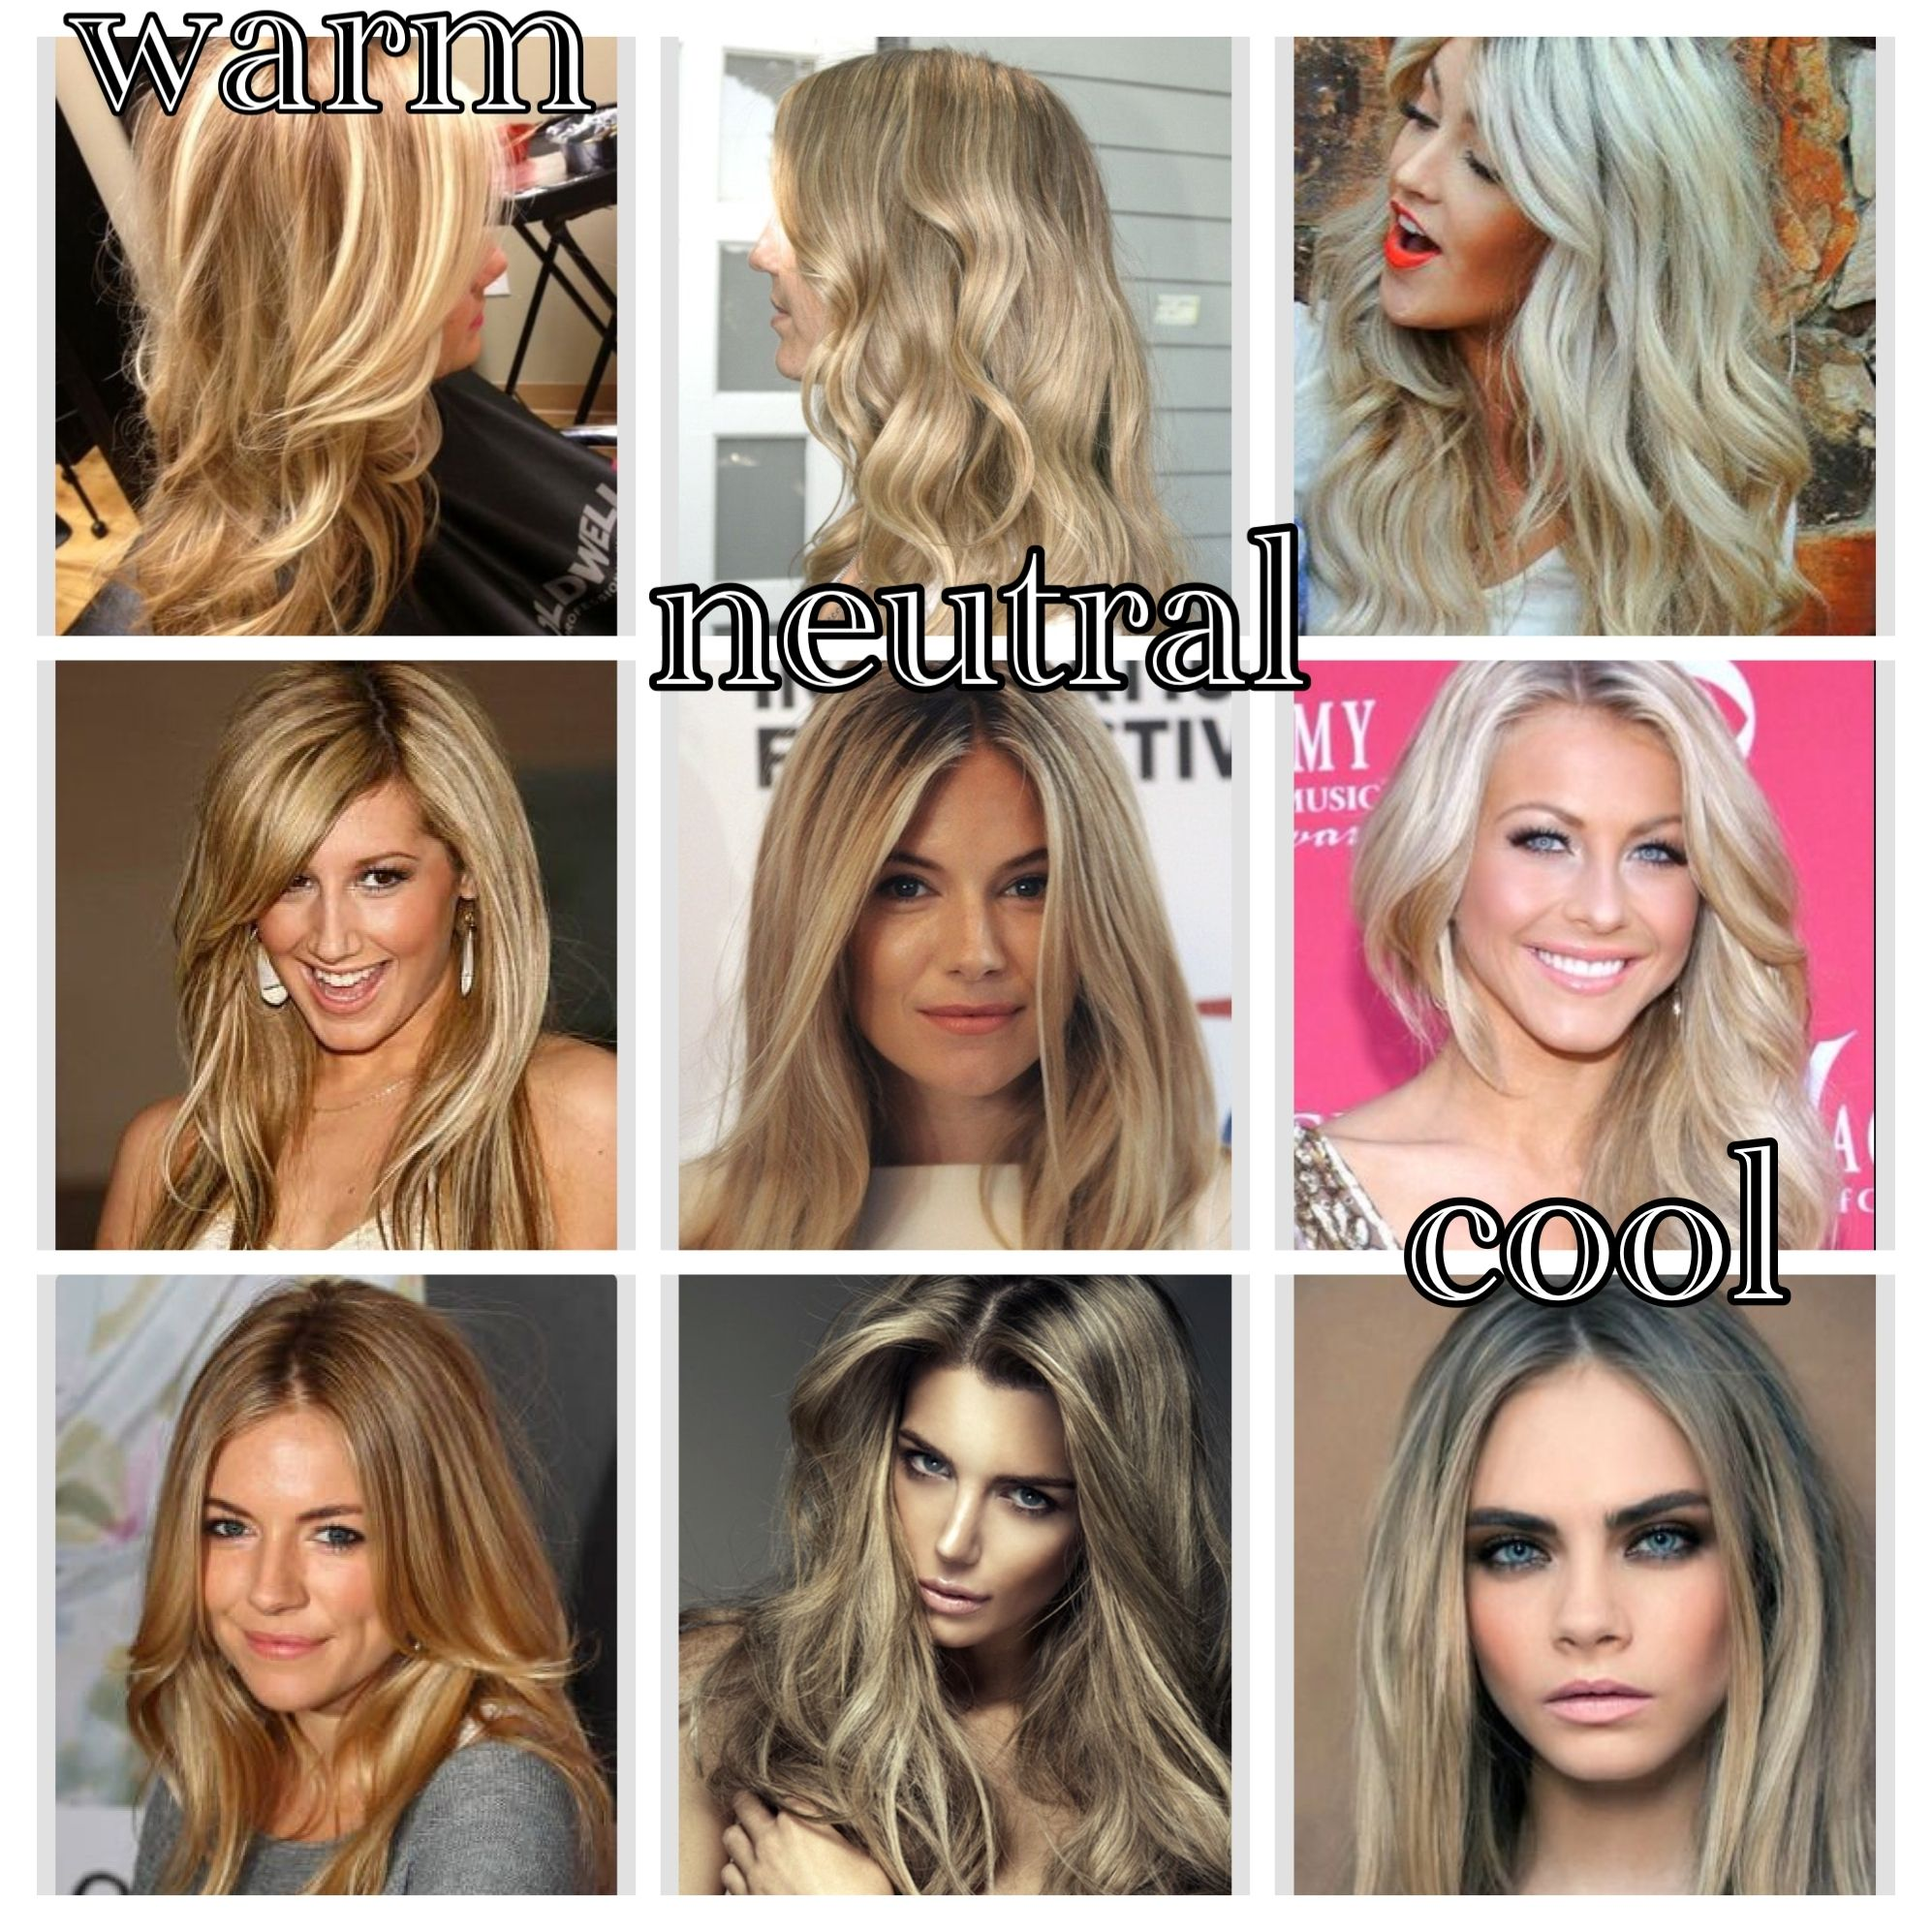 Blonde Hair Colors For Warm Skin Tones Neutral Blonde Hair Blonde Hair Color Blonde Hair Shades